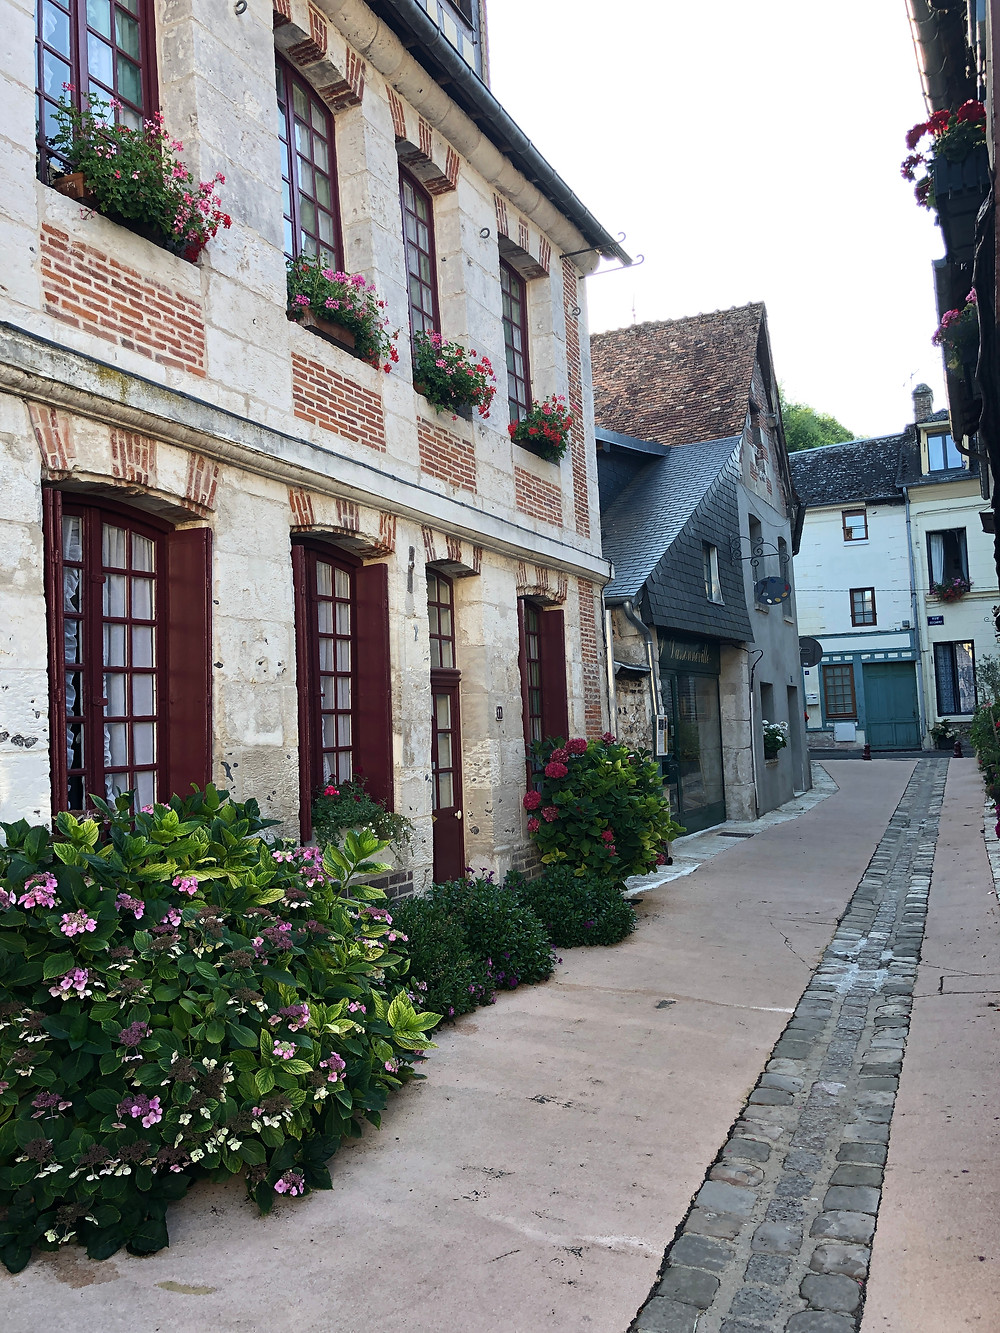 where to stay near calais, places to stop near calais, la Bouille